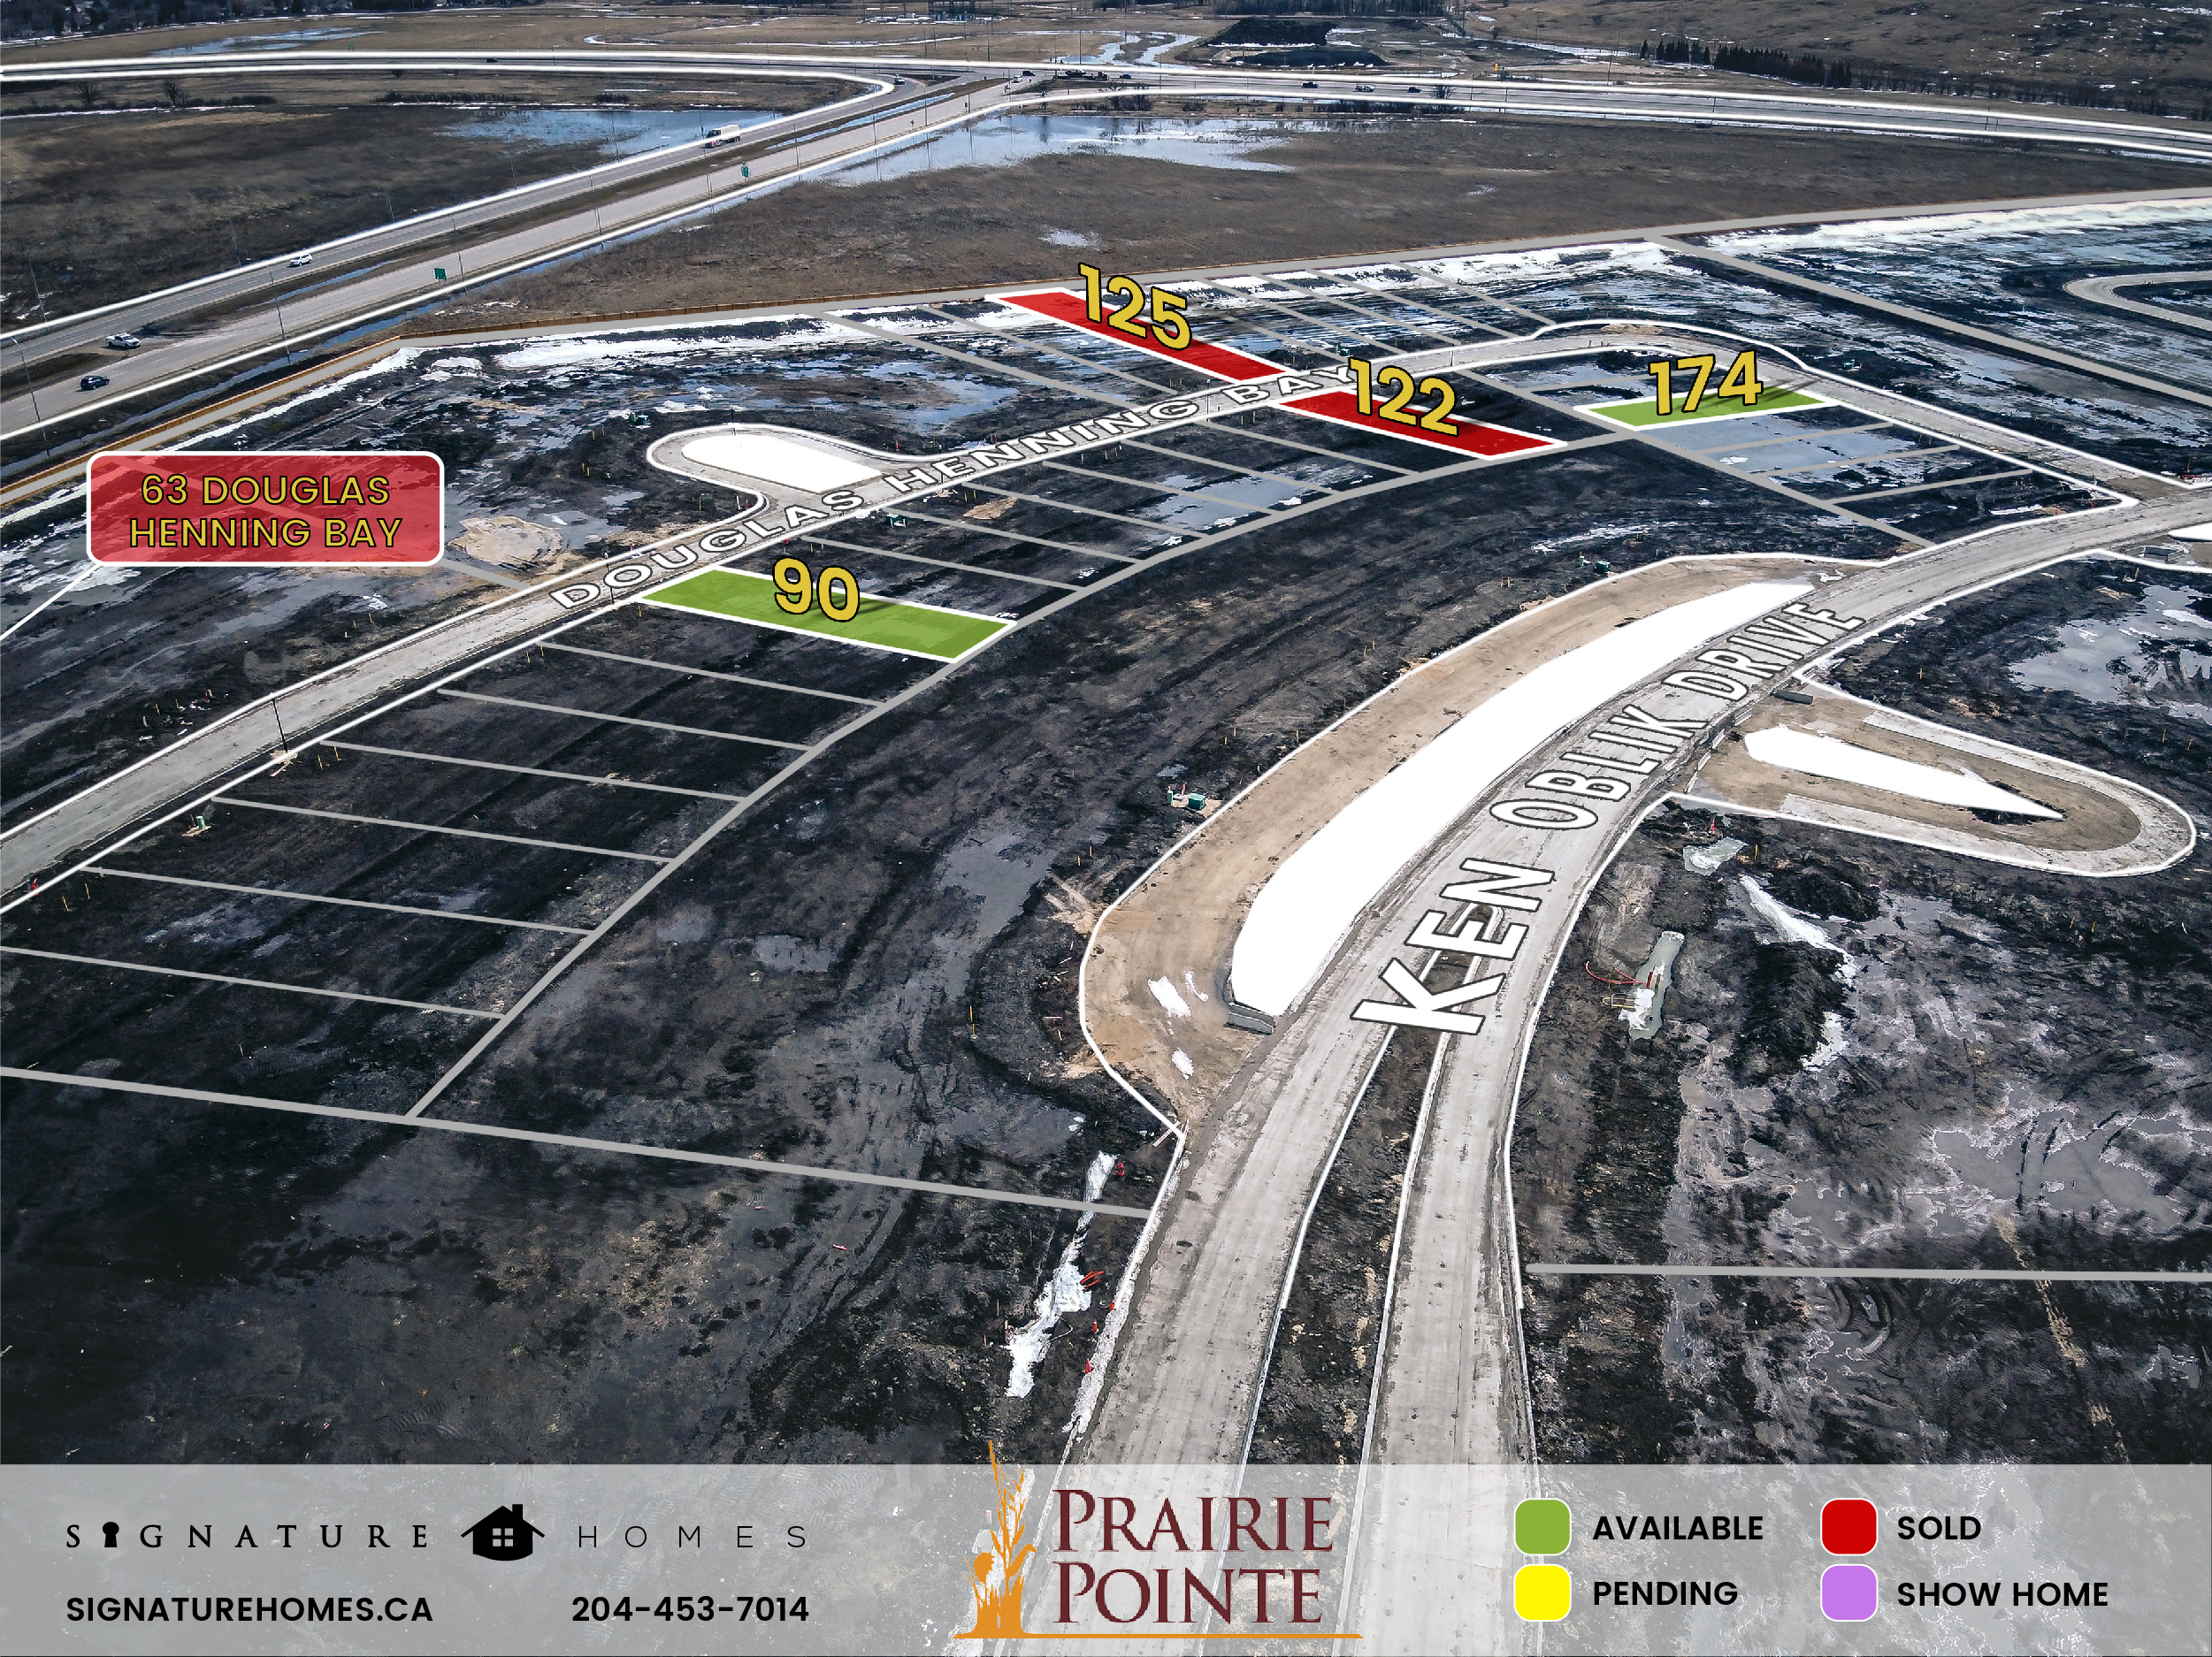 Prairie Pointe Phase 4 Map, Signature Homes, Winnipeg Manitoba